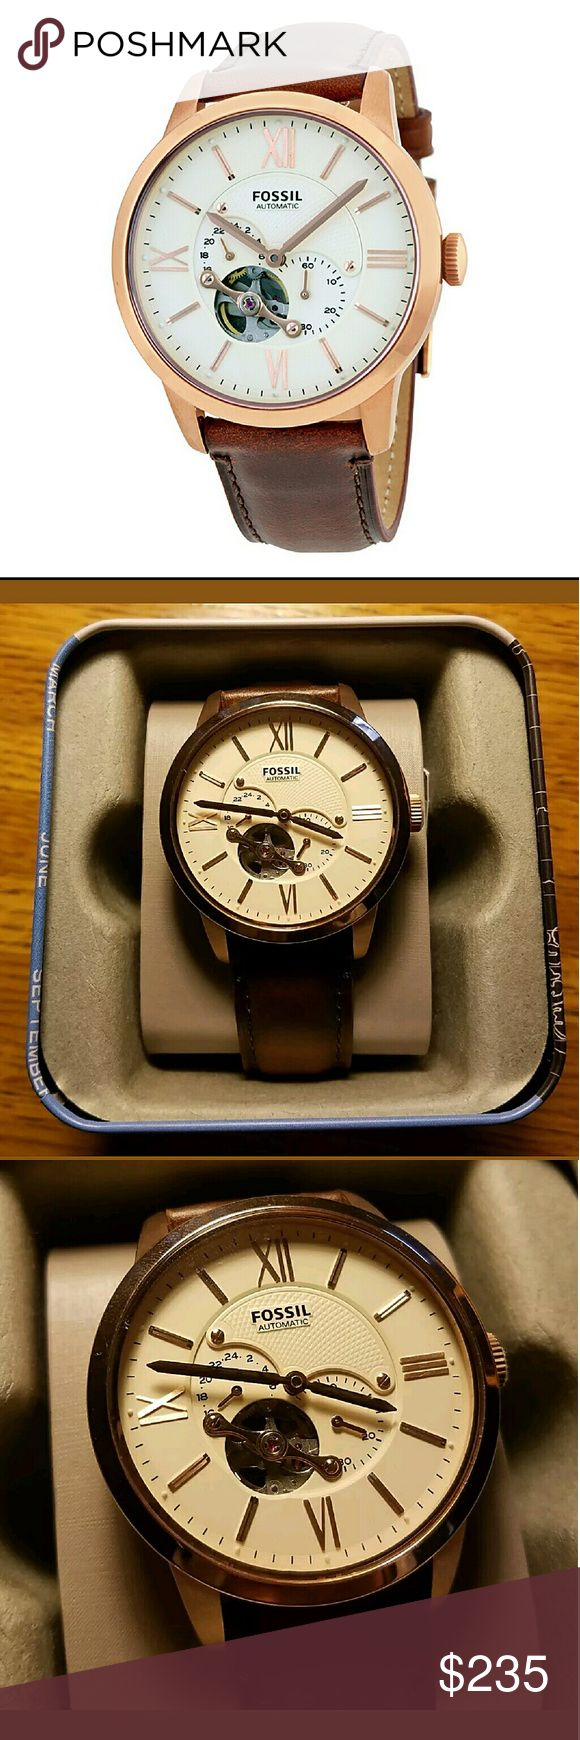 NWT Fossil beige Automatic Men's watch NWT FOSSIL Automatic Men's Watch.  Firm price firm price firm price firm price firm price firm price   $235.00 . AUTHENTIC WATCH  . AUTHENTIC BOX  . AUTHENTIC MANUAL    SHIPPING  PLEASE ALLOW FEW BUSINESS DAYS FOR ME TO SHIPPED IT OFF.I HAVE TO GET IT FROM MY WAREHOUSE.    THANK YOU FOR YOUR UNDERSTANDING. Fossil  Accessories Watches